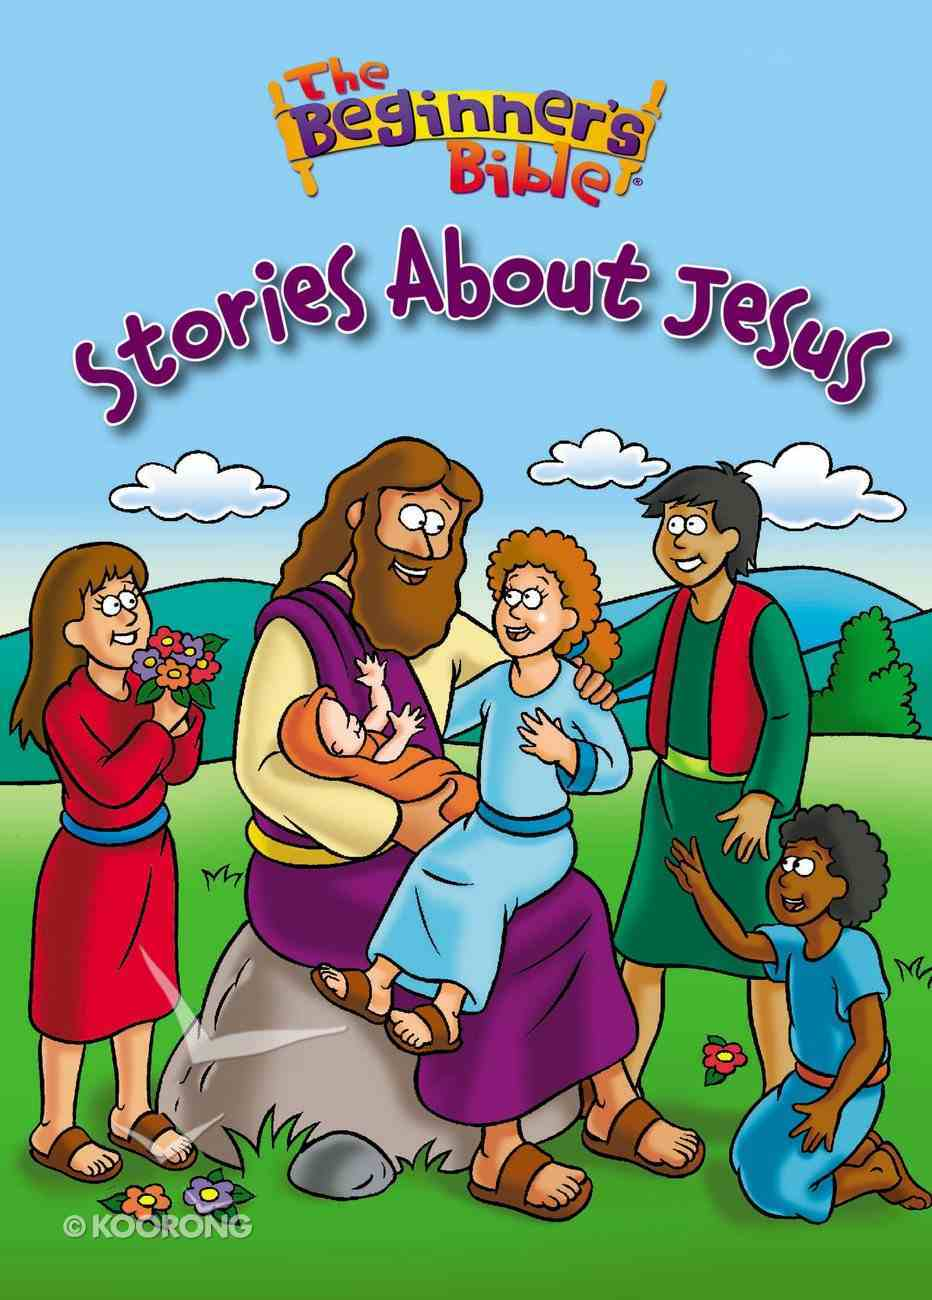 The Beginner's Bible Stories About Jesus Board Book